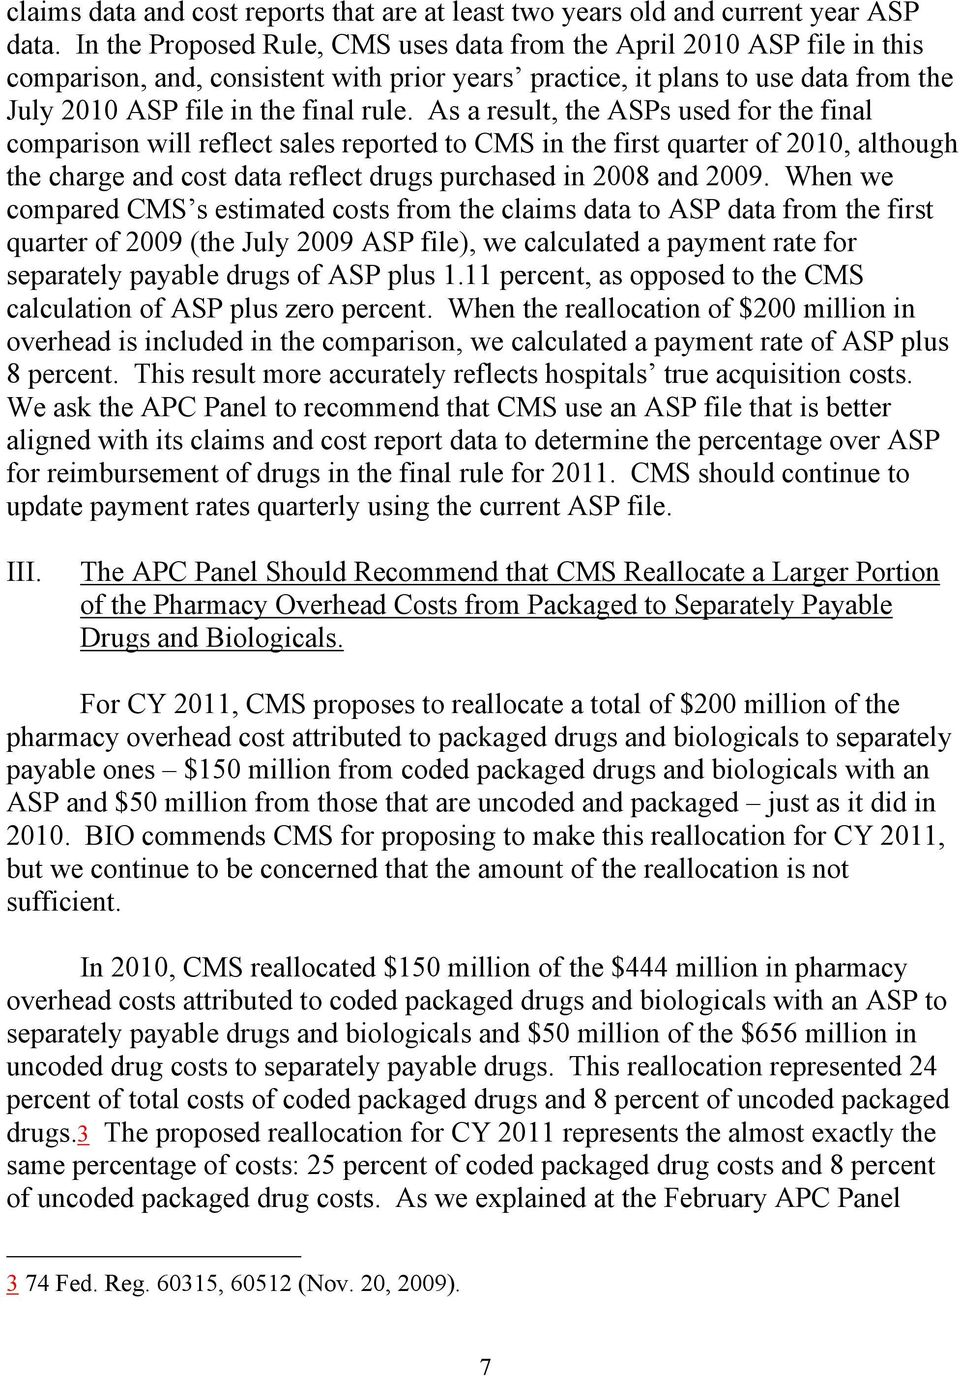 As a result, the ASPs used for the final comparison will reflect sales reported to CMS in the first quarter of 2010, although the charge and cost data reflect drugs purchased in 2008 and 2009.